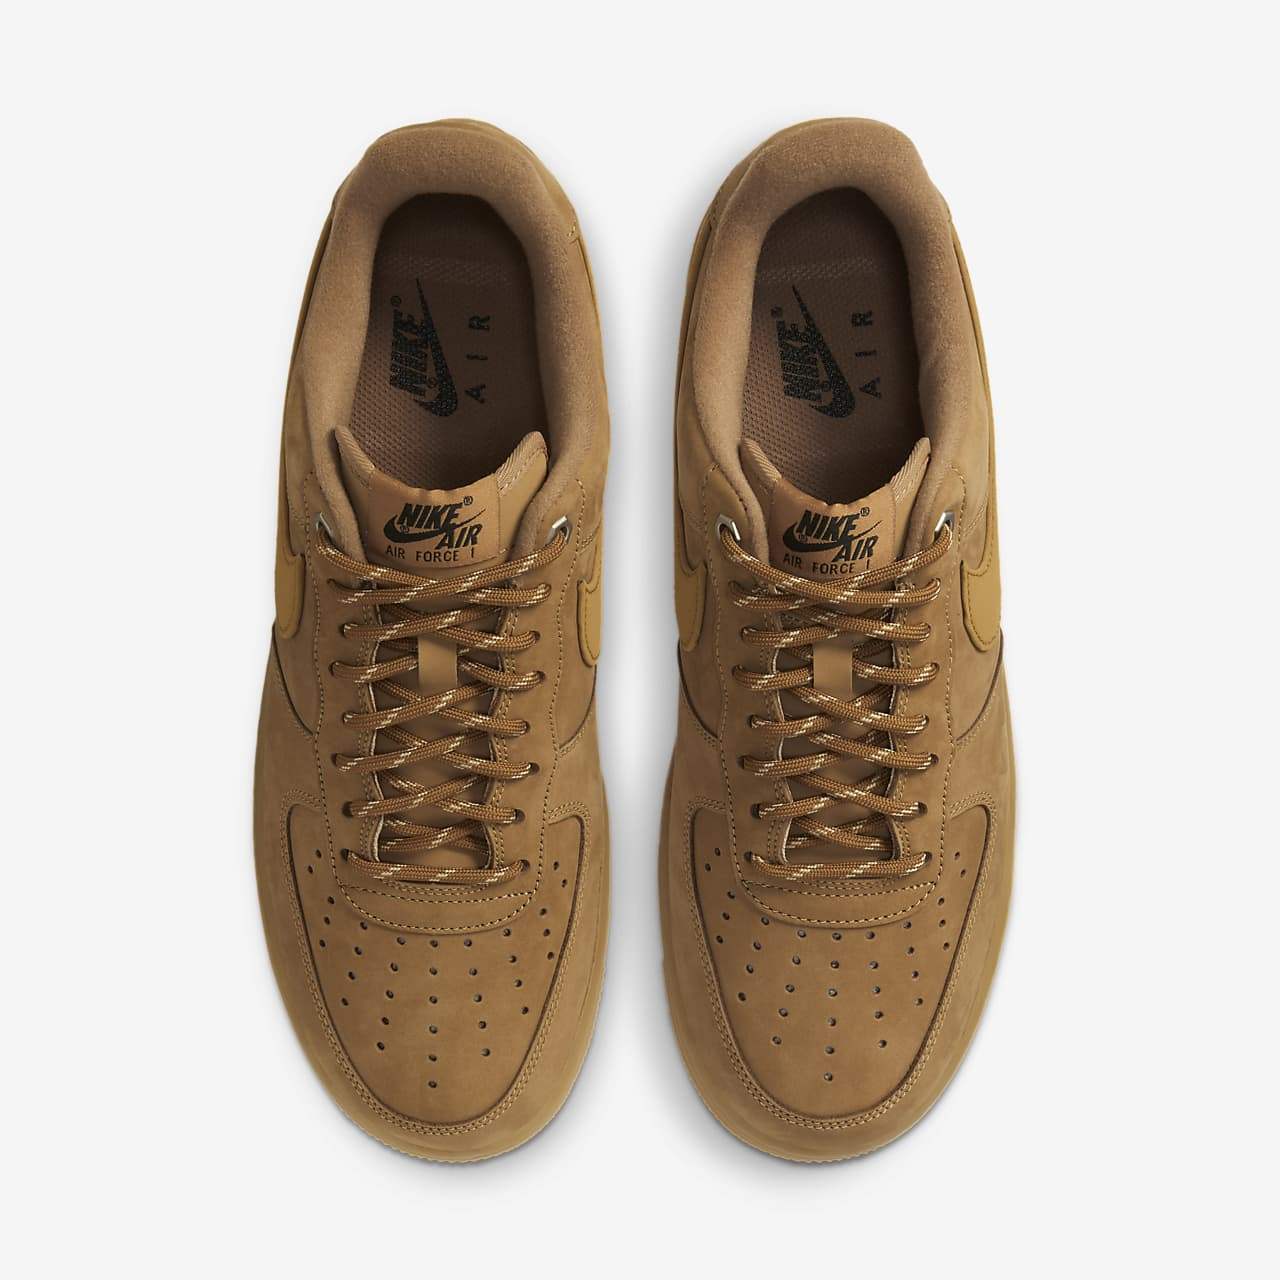 nike AIR FORCE 1 '07 WB FLAXFLAX GUM LIGHT BROWN OUTDOOR